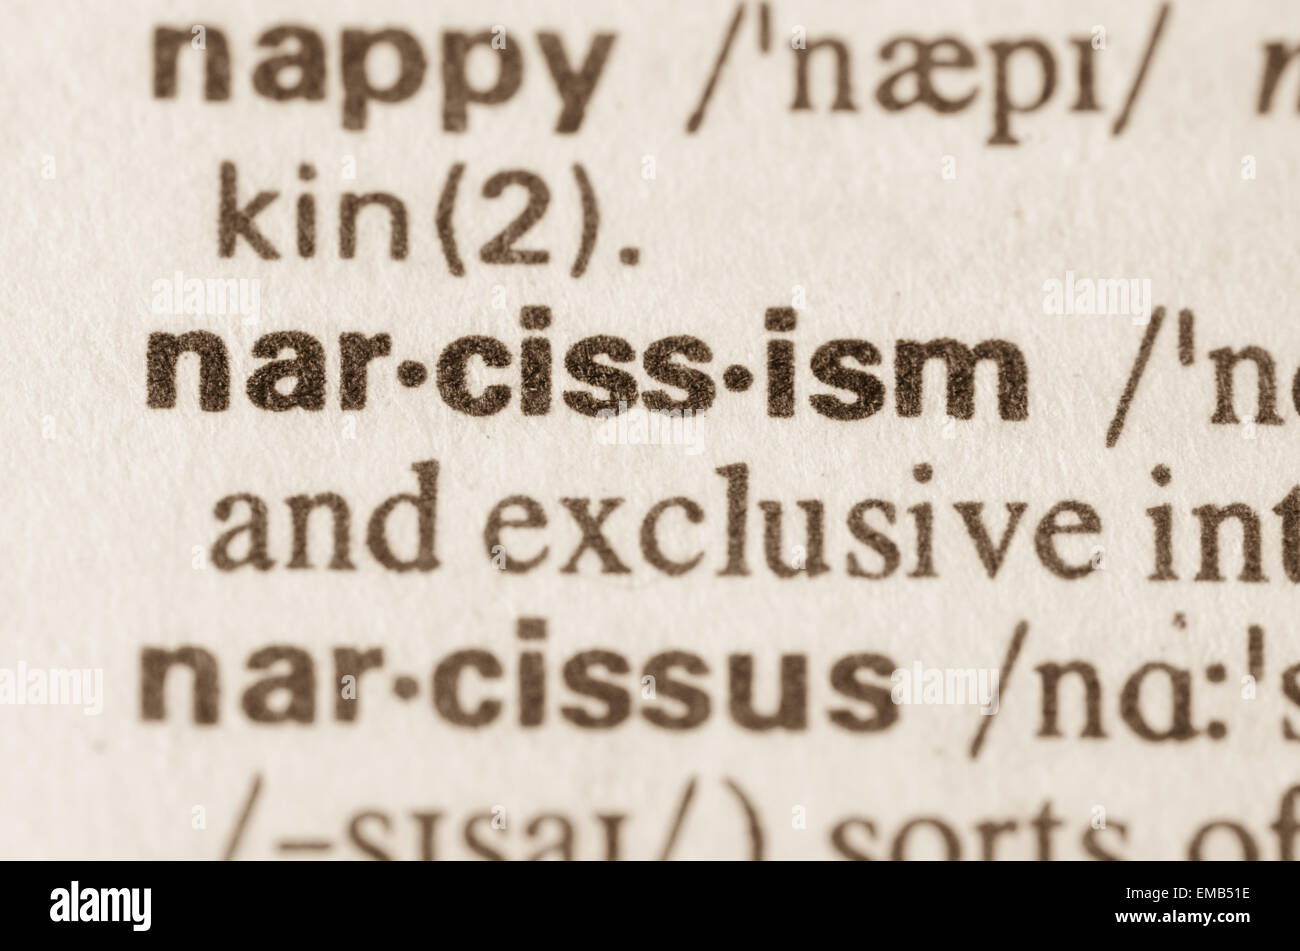 definition of word narcissism in dictionary stock photo: 81380026